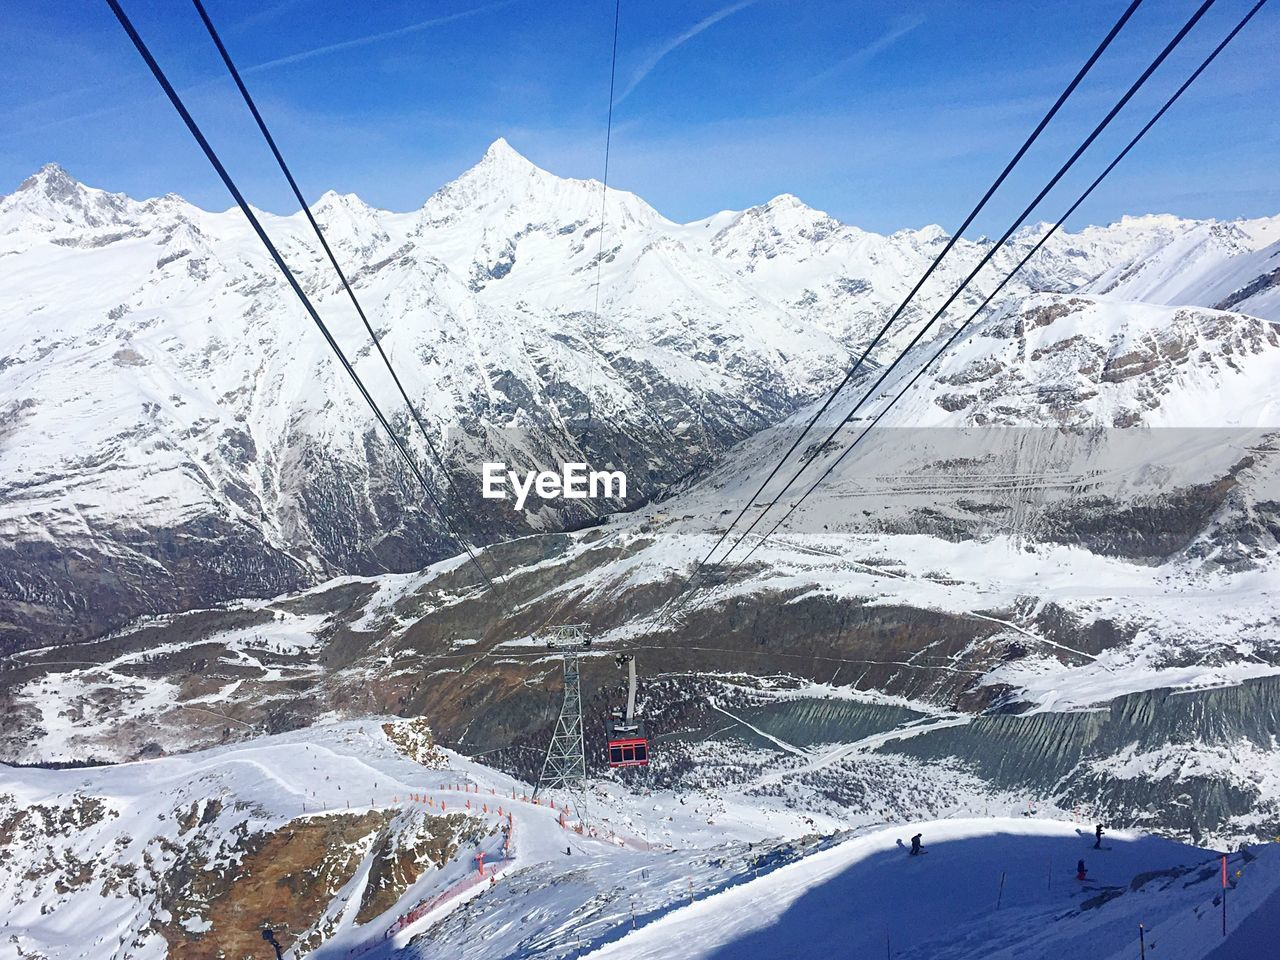 snow, winter, mountain, cold temperature, cable, weather, nature, transportation, snowcapped mountain, mountain range, outdoors, scenics, white color, day, beauty in nature, tranquil scene, frozen, sky, overhead cable car, tranquility, sunlight, landscape, no people, ski lift, range